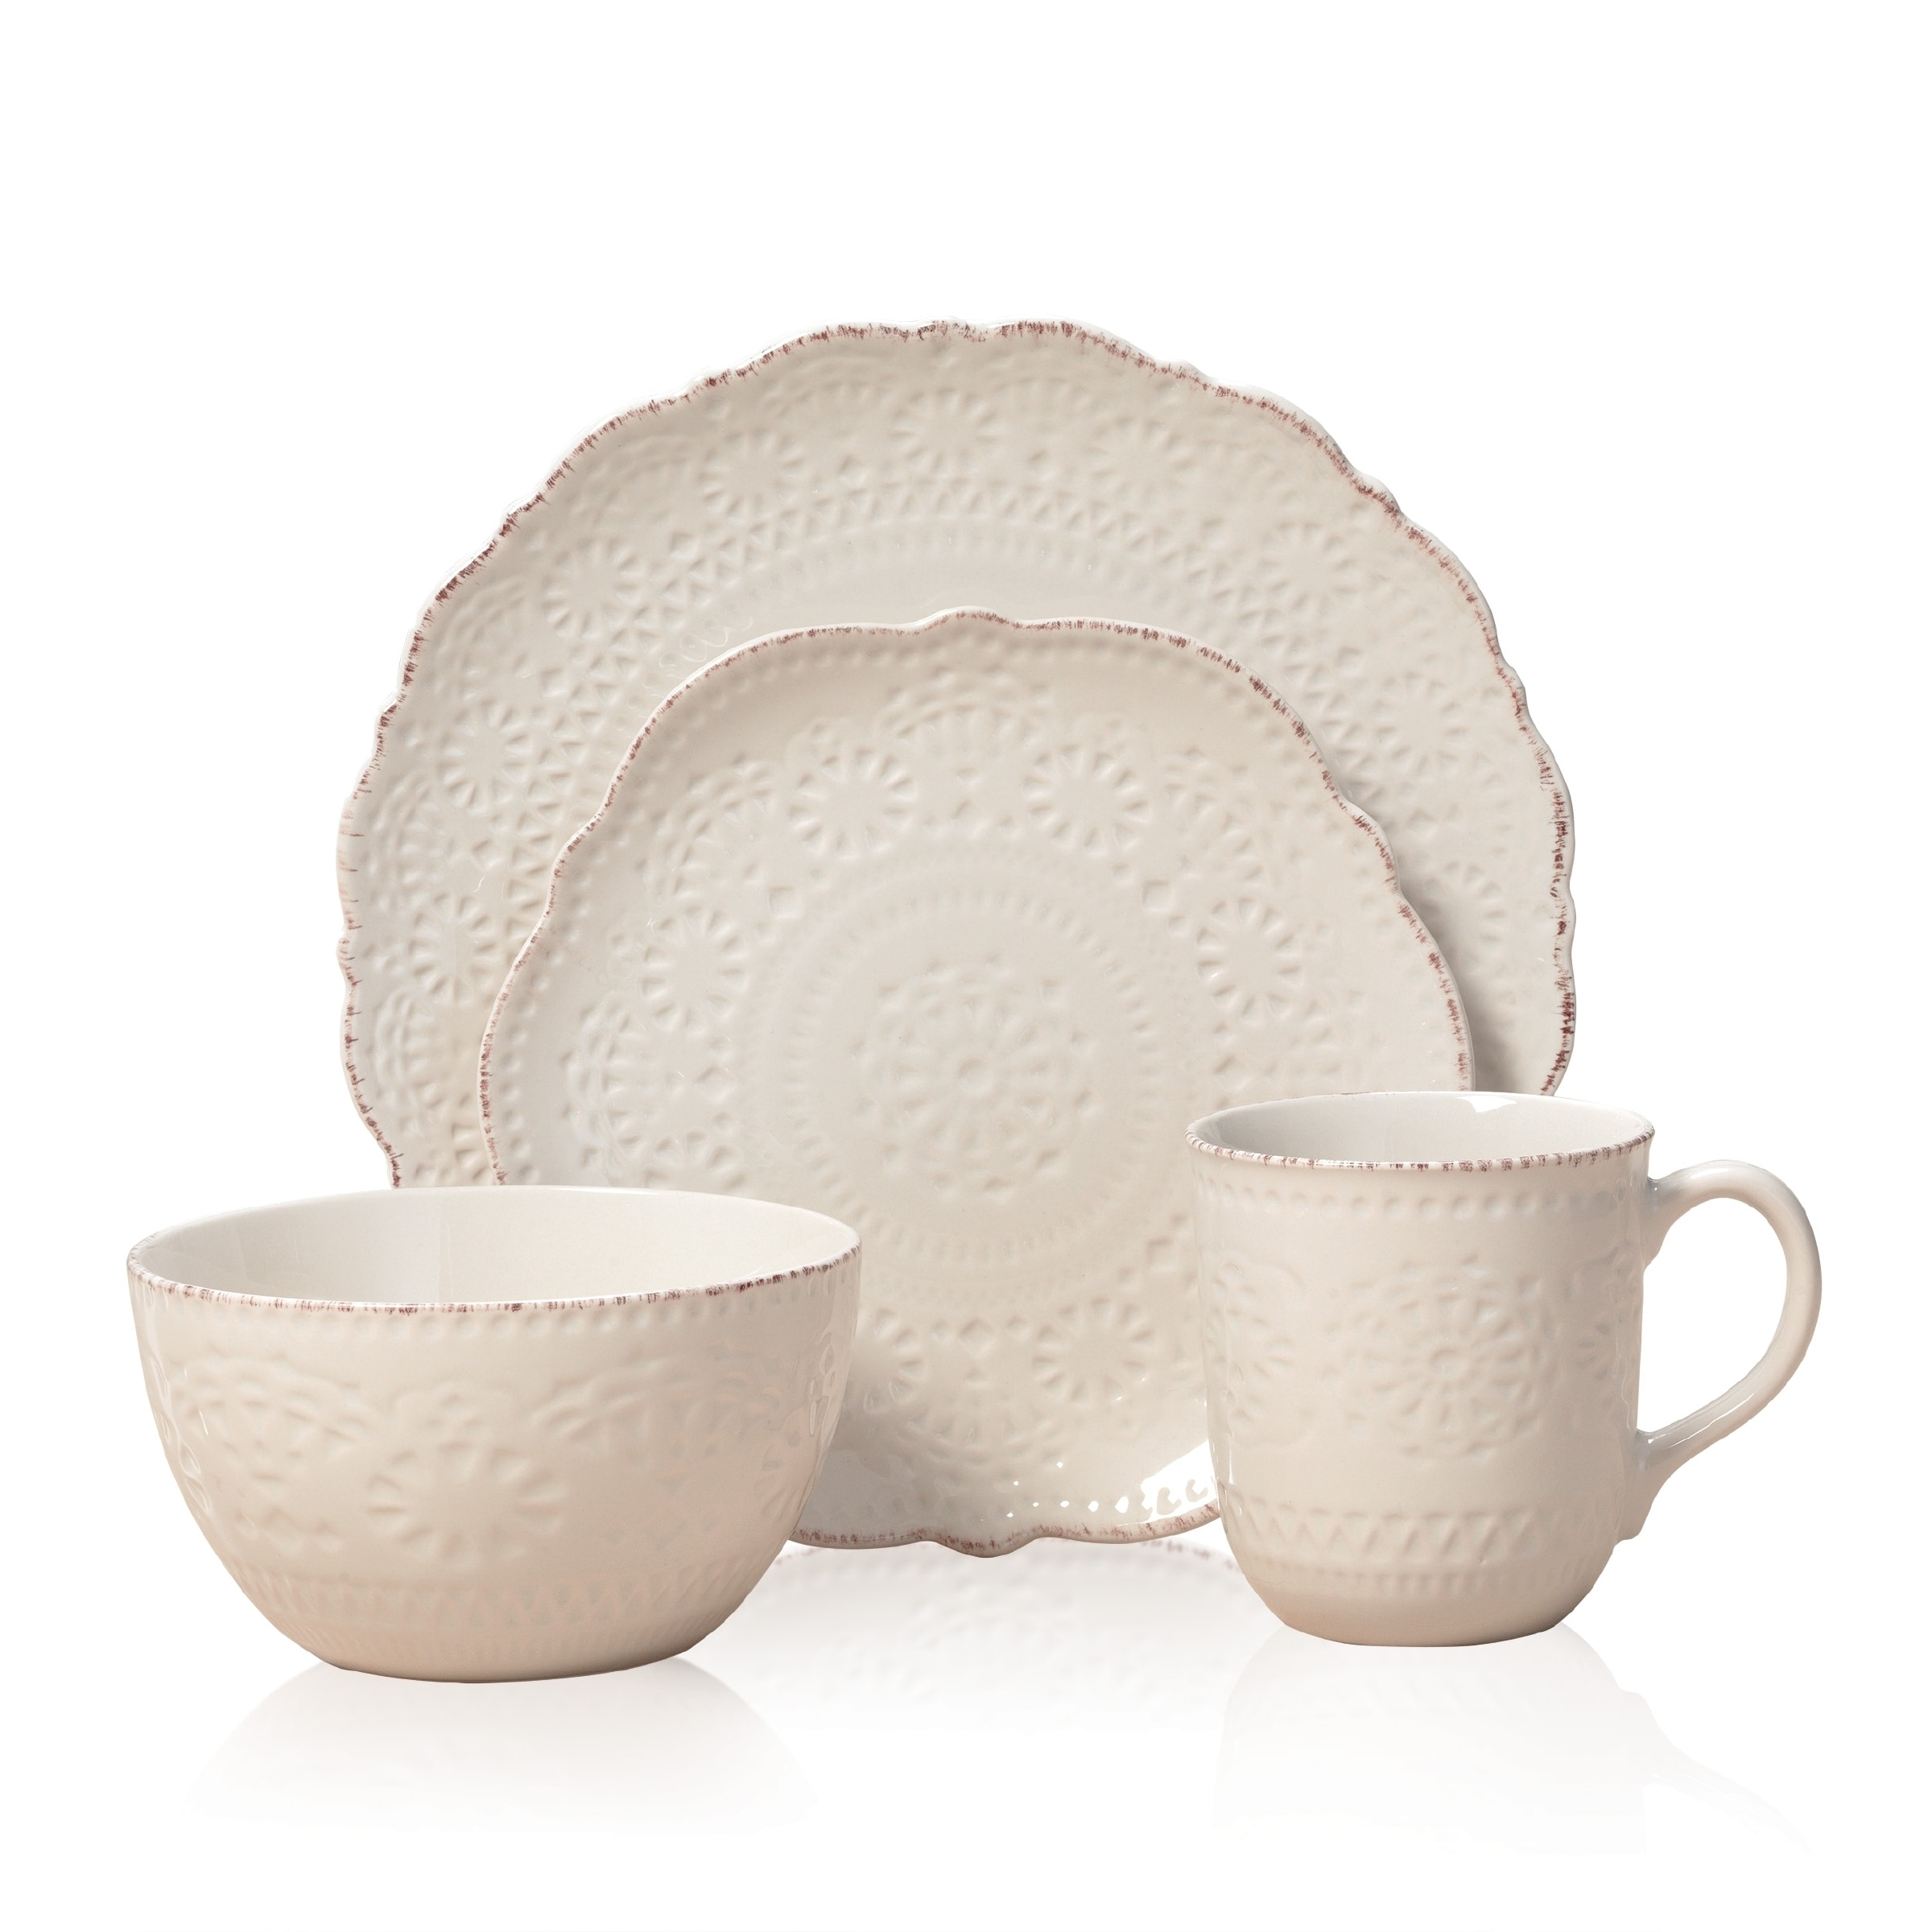 Pfaltzgaff Everyday Chateau Cream 16-piece Dinnerware Set - Free Shipping Today - Overstock.com - 16669372  sc 1 st  Overstock.com & Pfaltzgaff Everyday Chateau Cream 16-piece Dinnerware Set - Free ...